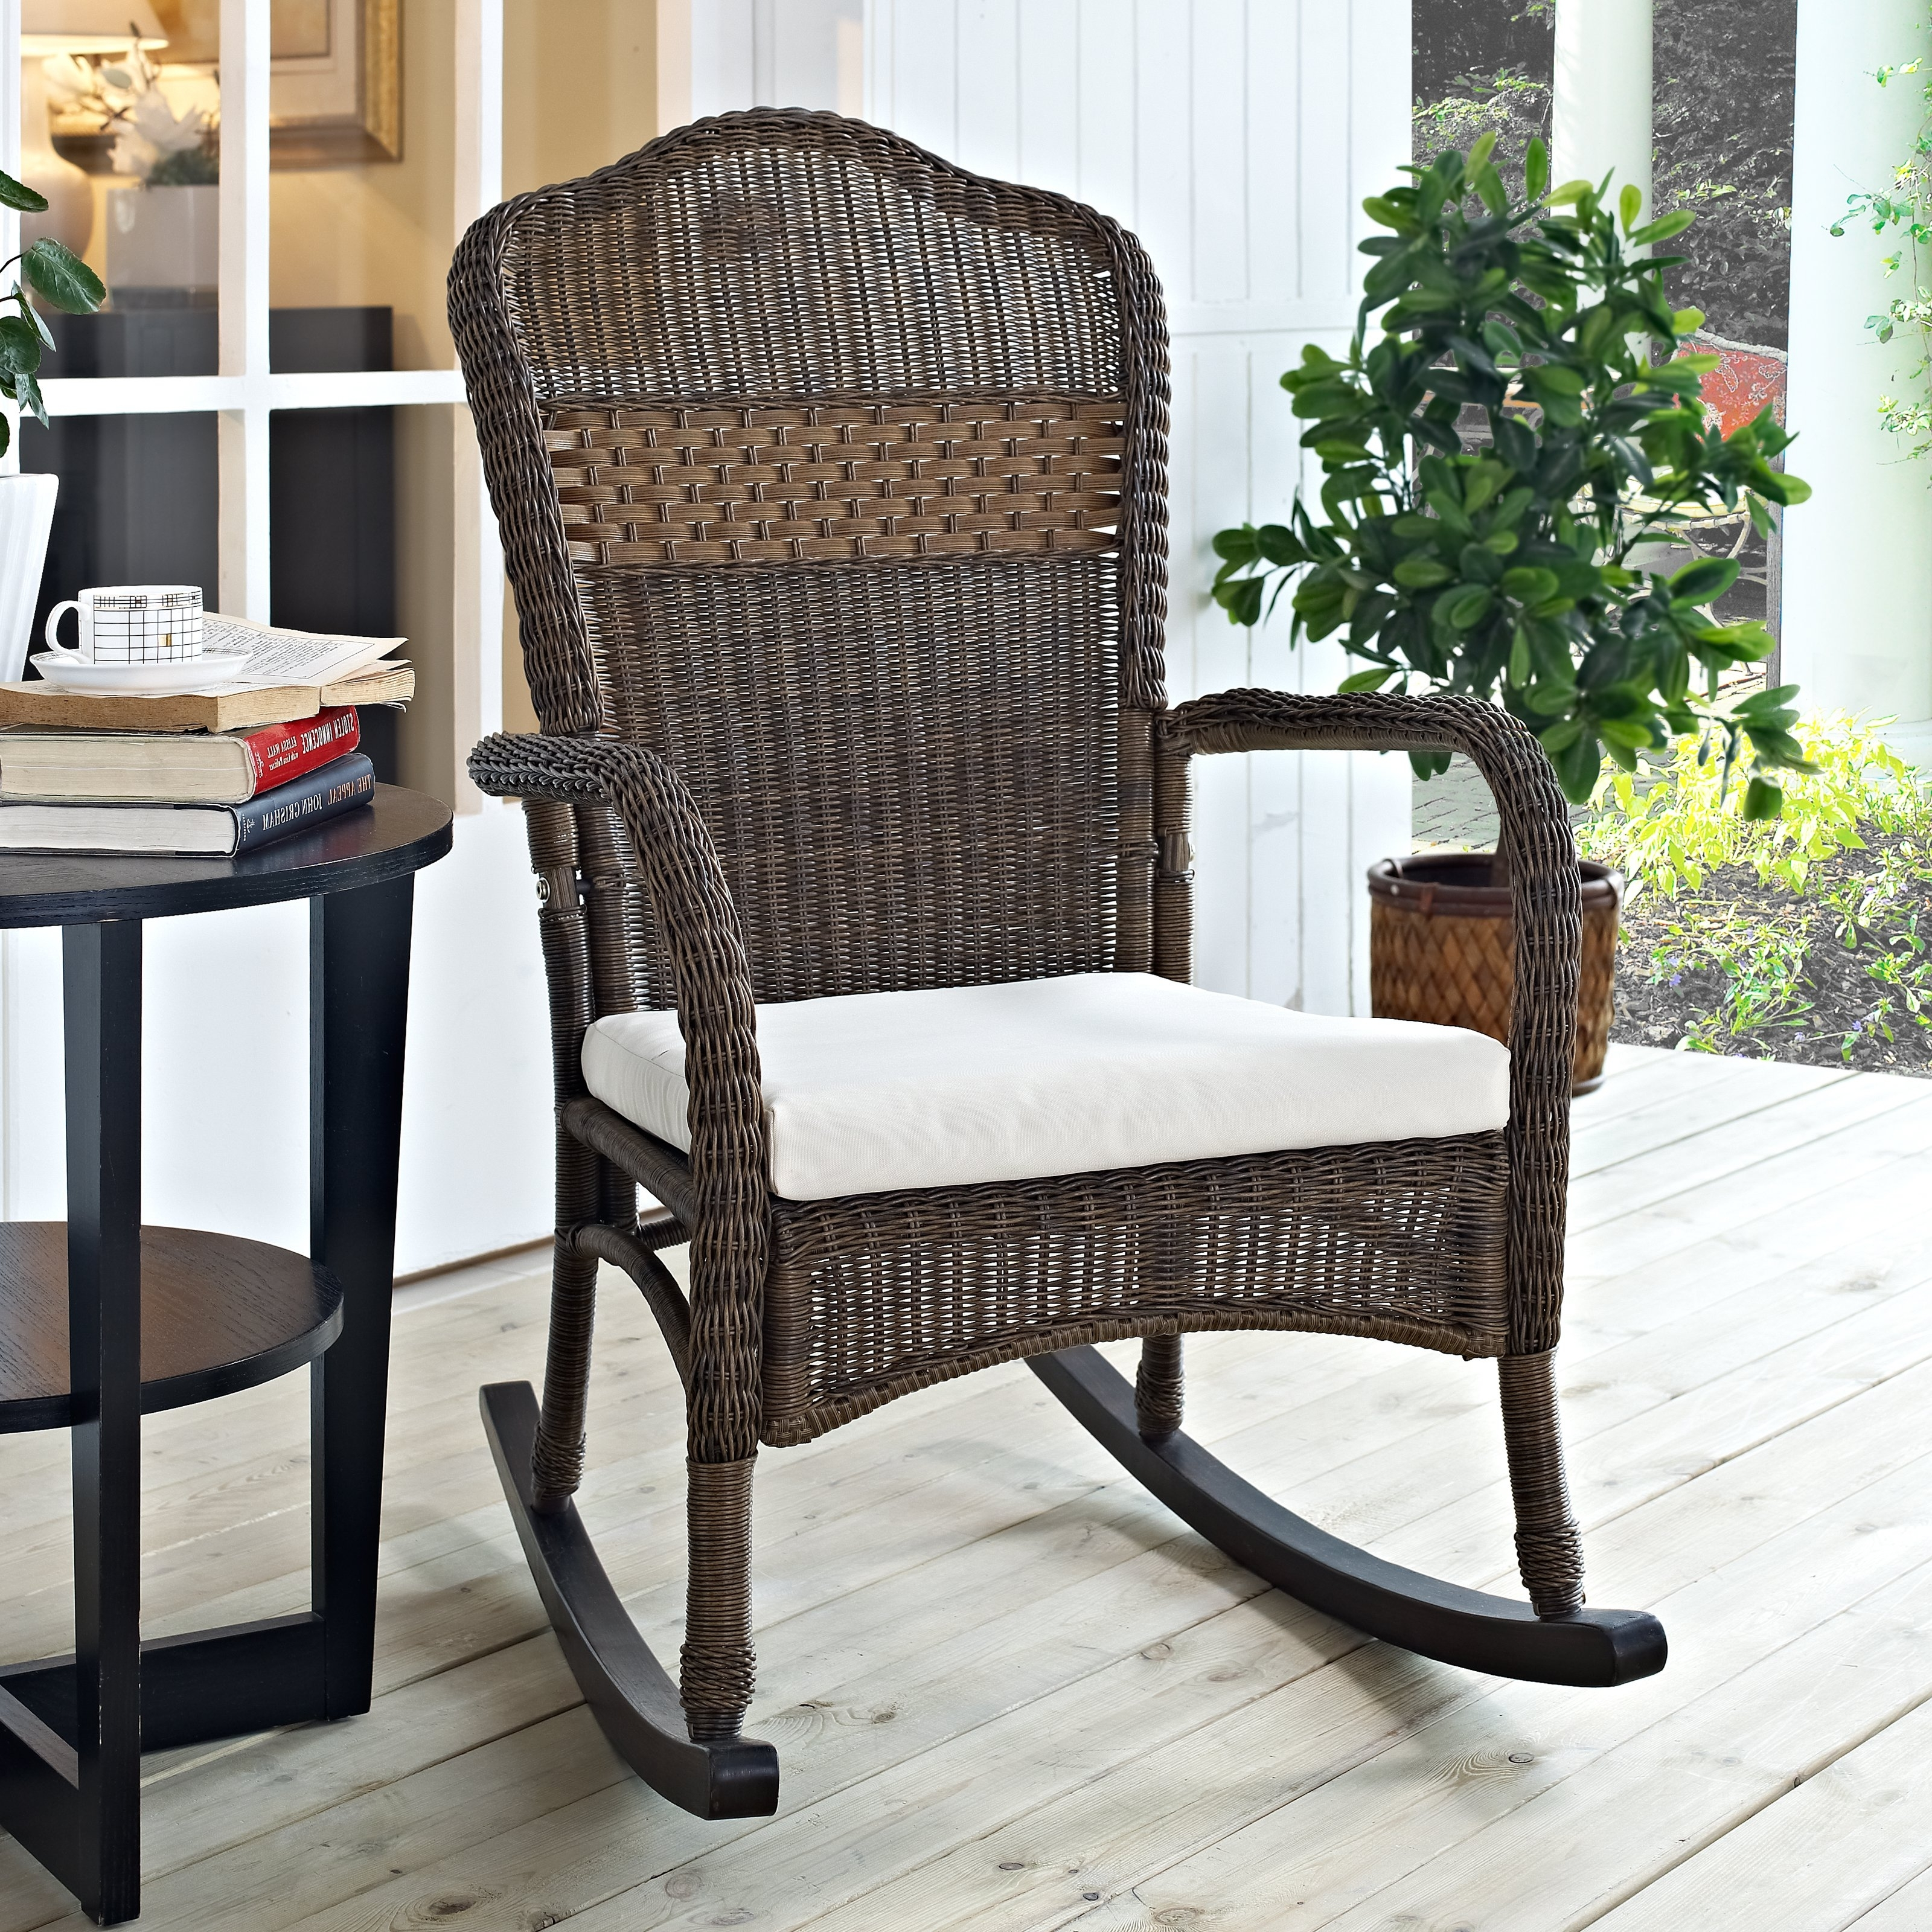 Preferred Unique Outdoor Rocking Chairs Pertaining To Coral Coast Mocha Resin Wicker Rocking Chair With Beige Cushion (View 3 of 15)